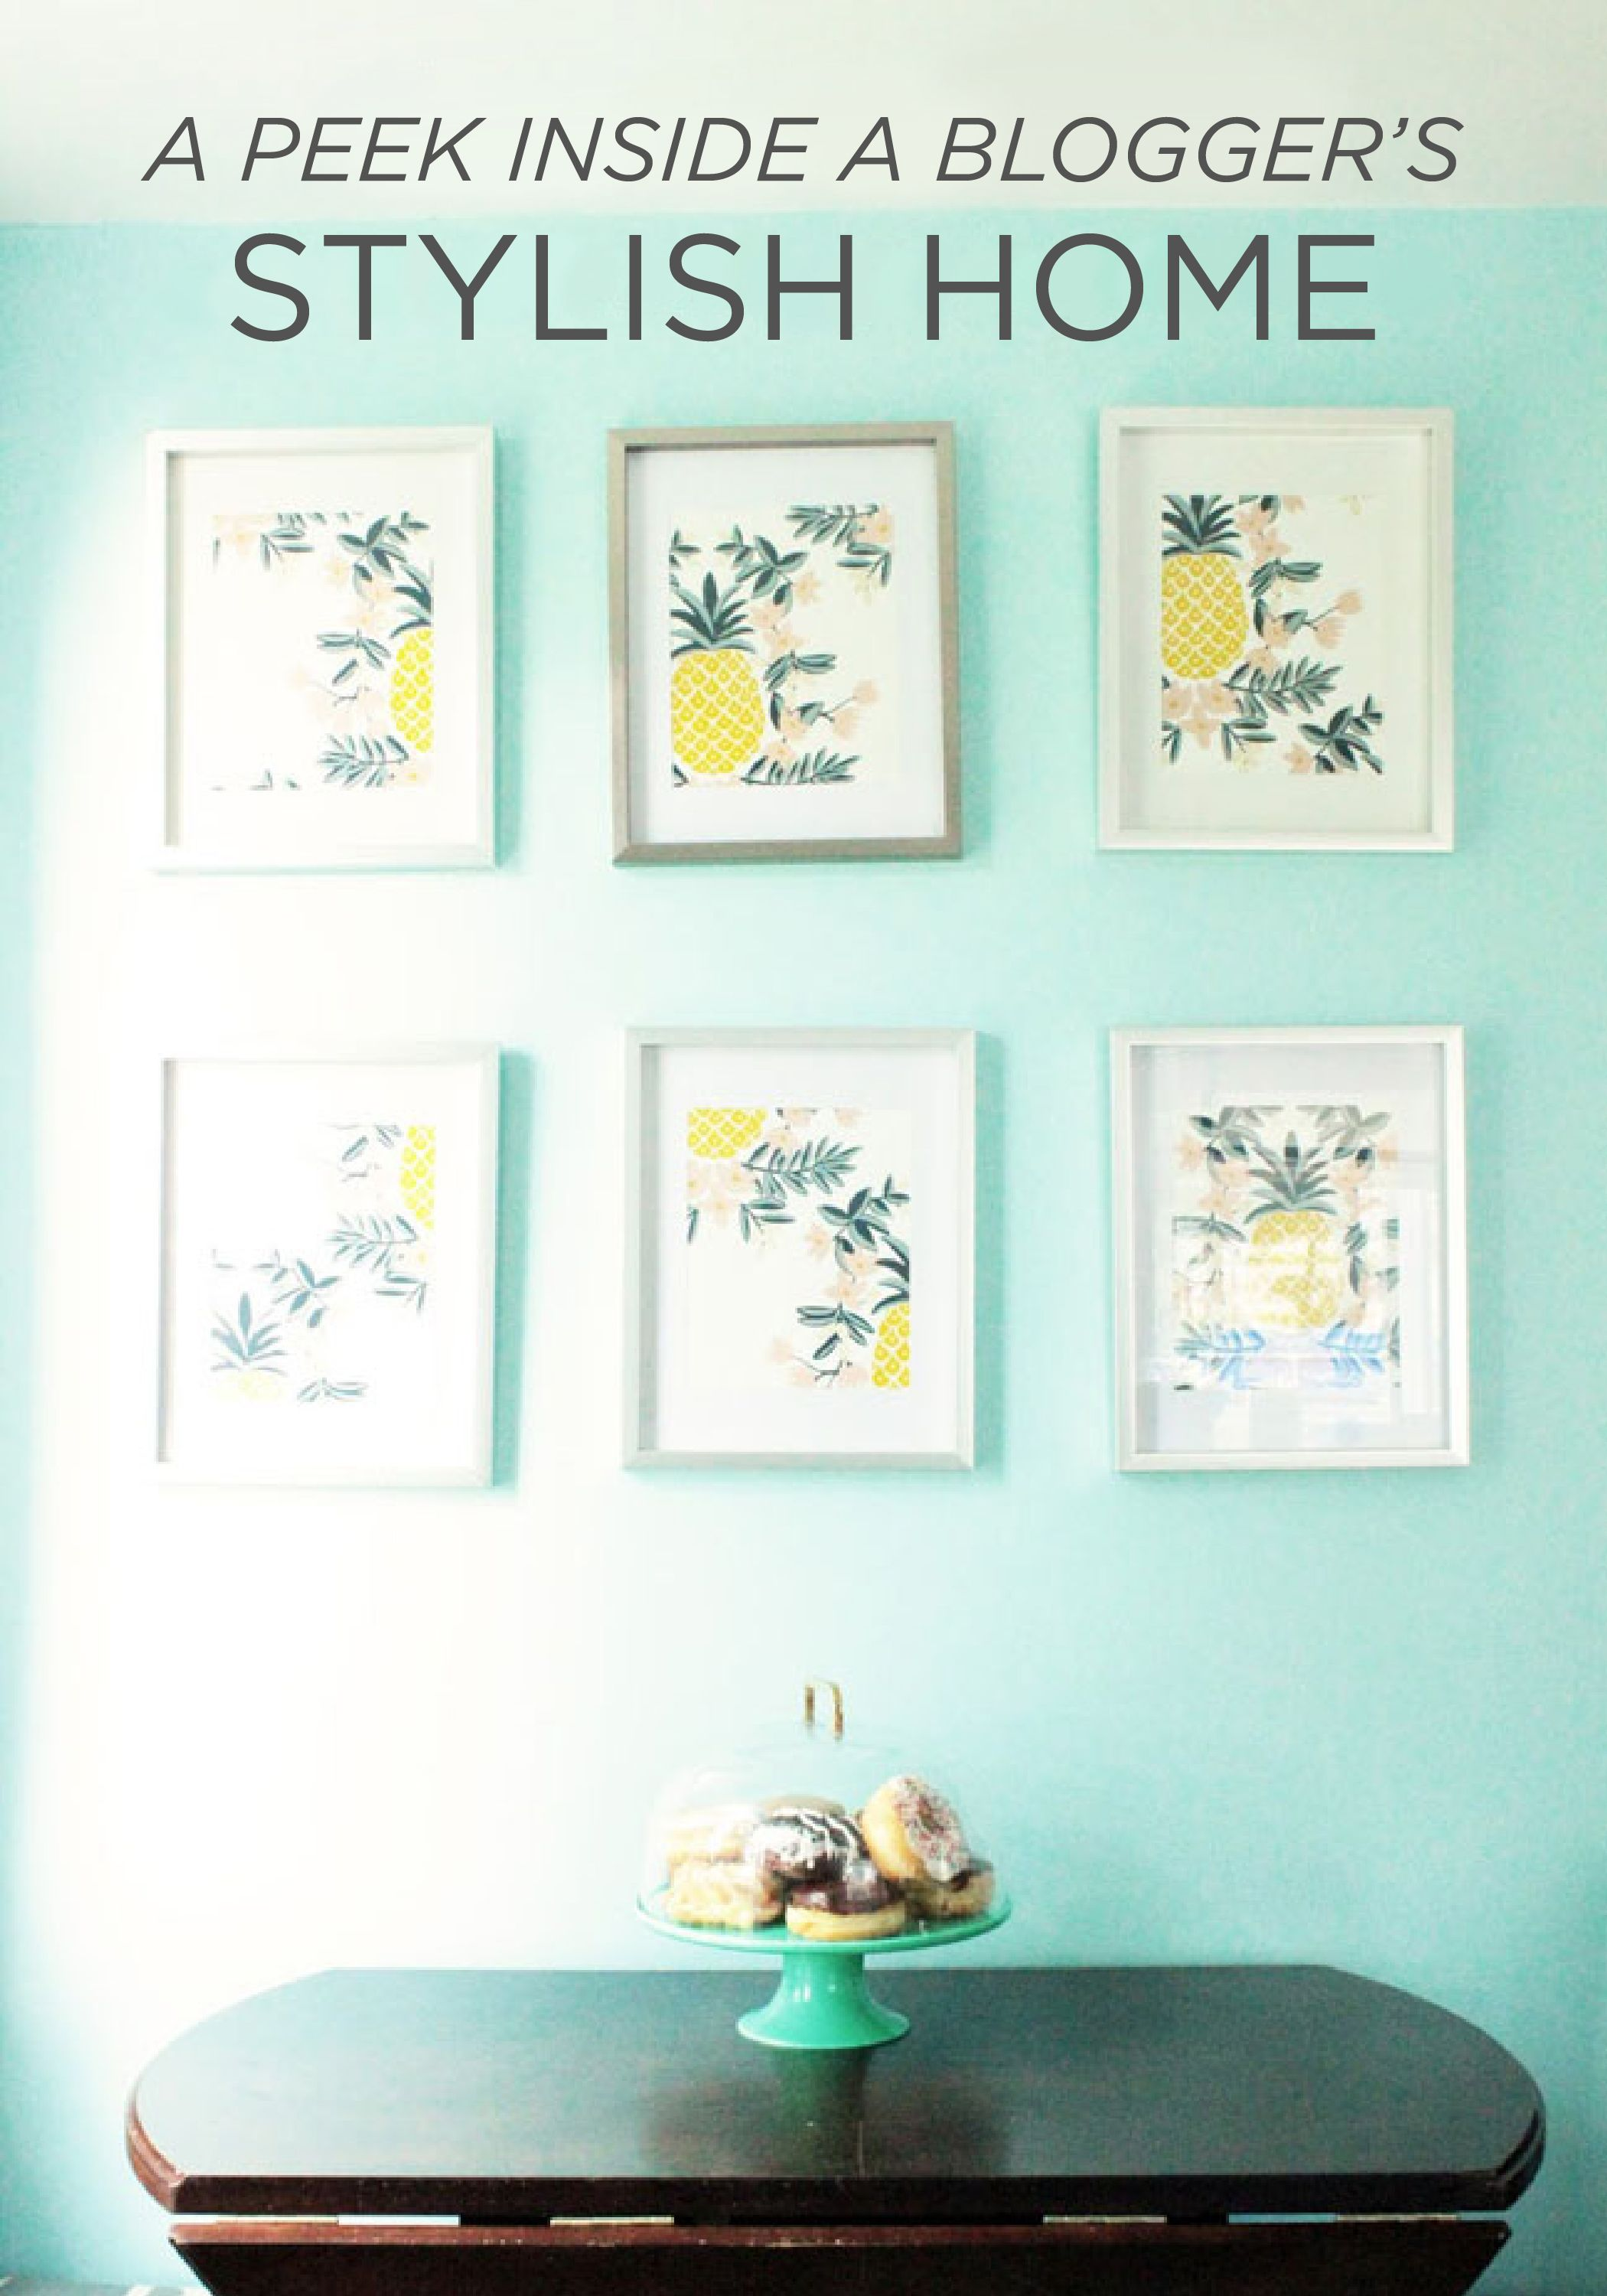 Peek Inside This Bloggers Stylish Home To Find Up To Date Spring Inspiration